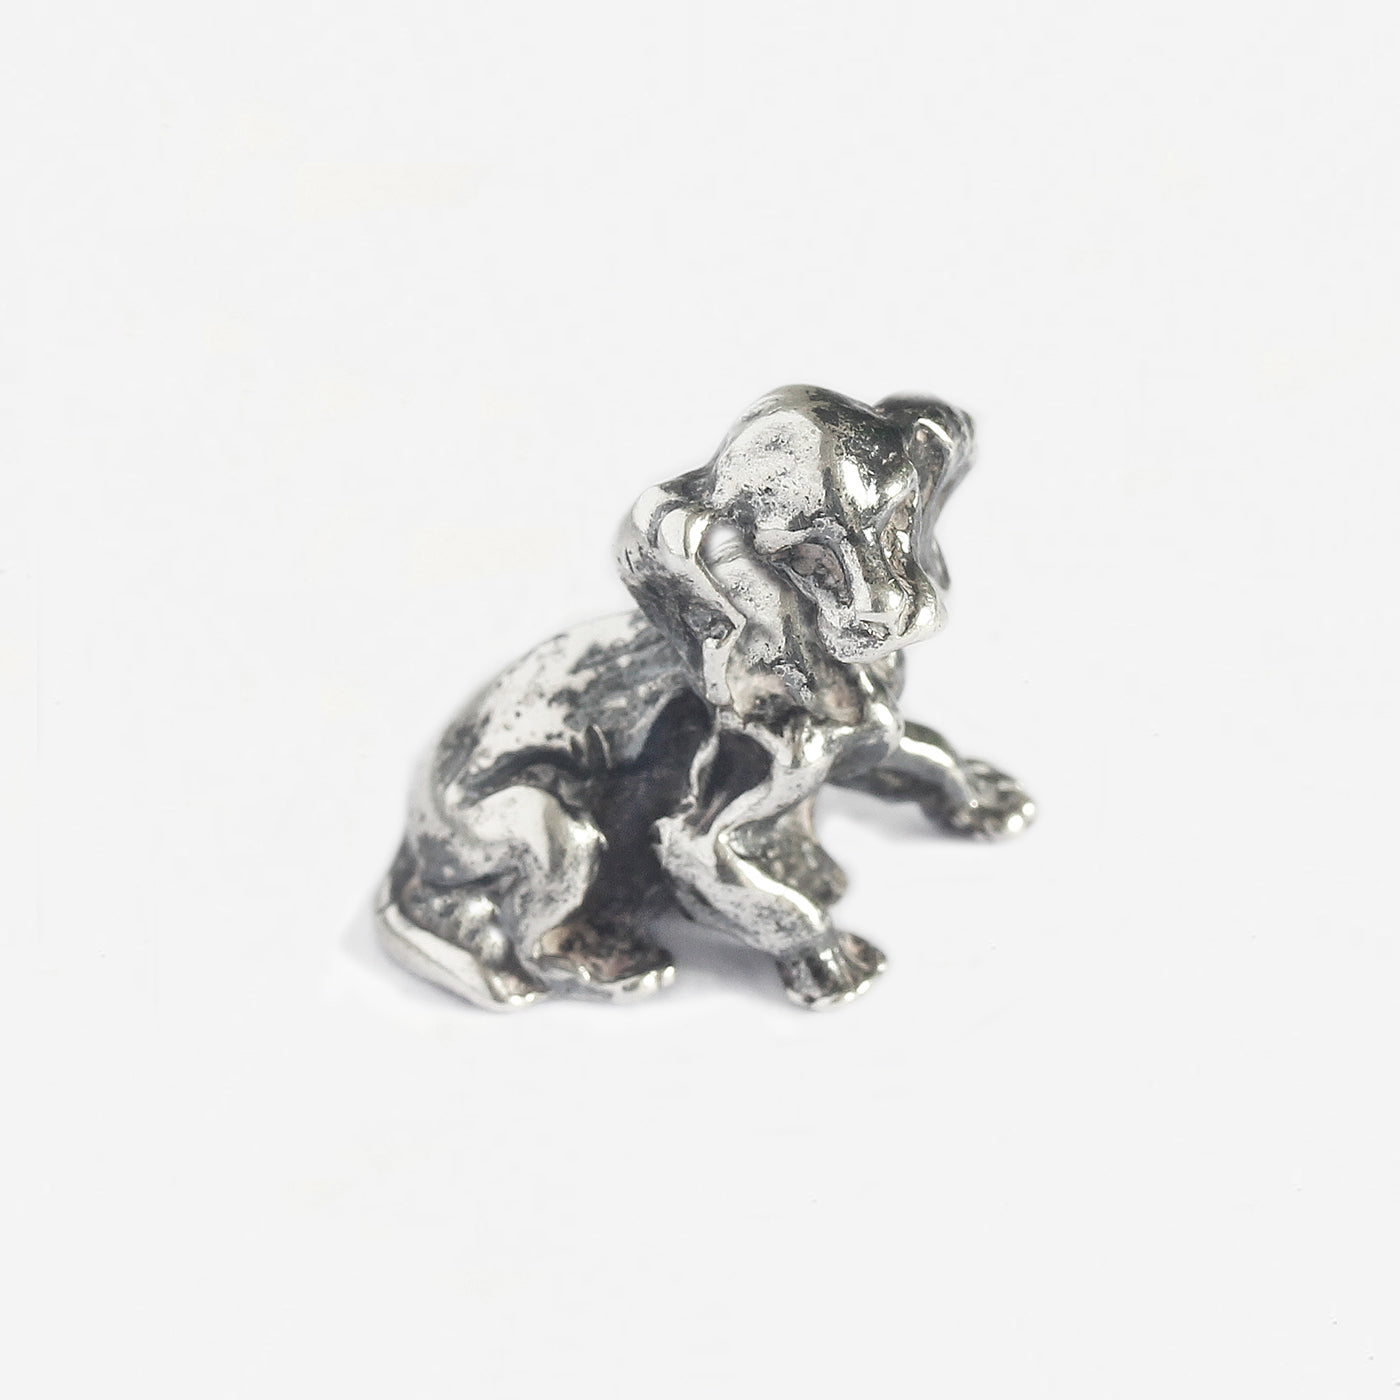 a small silver puppy dog figure dated 1987